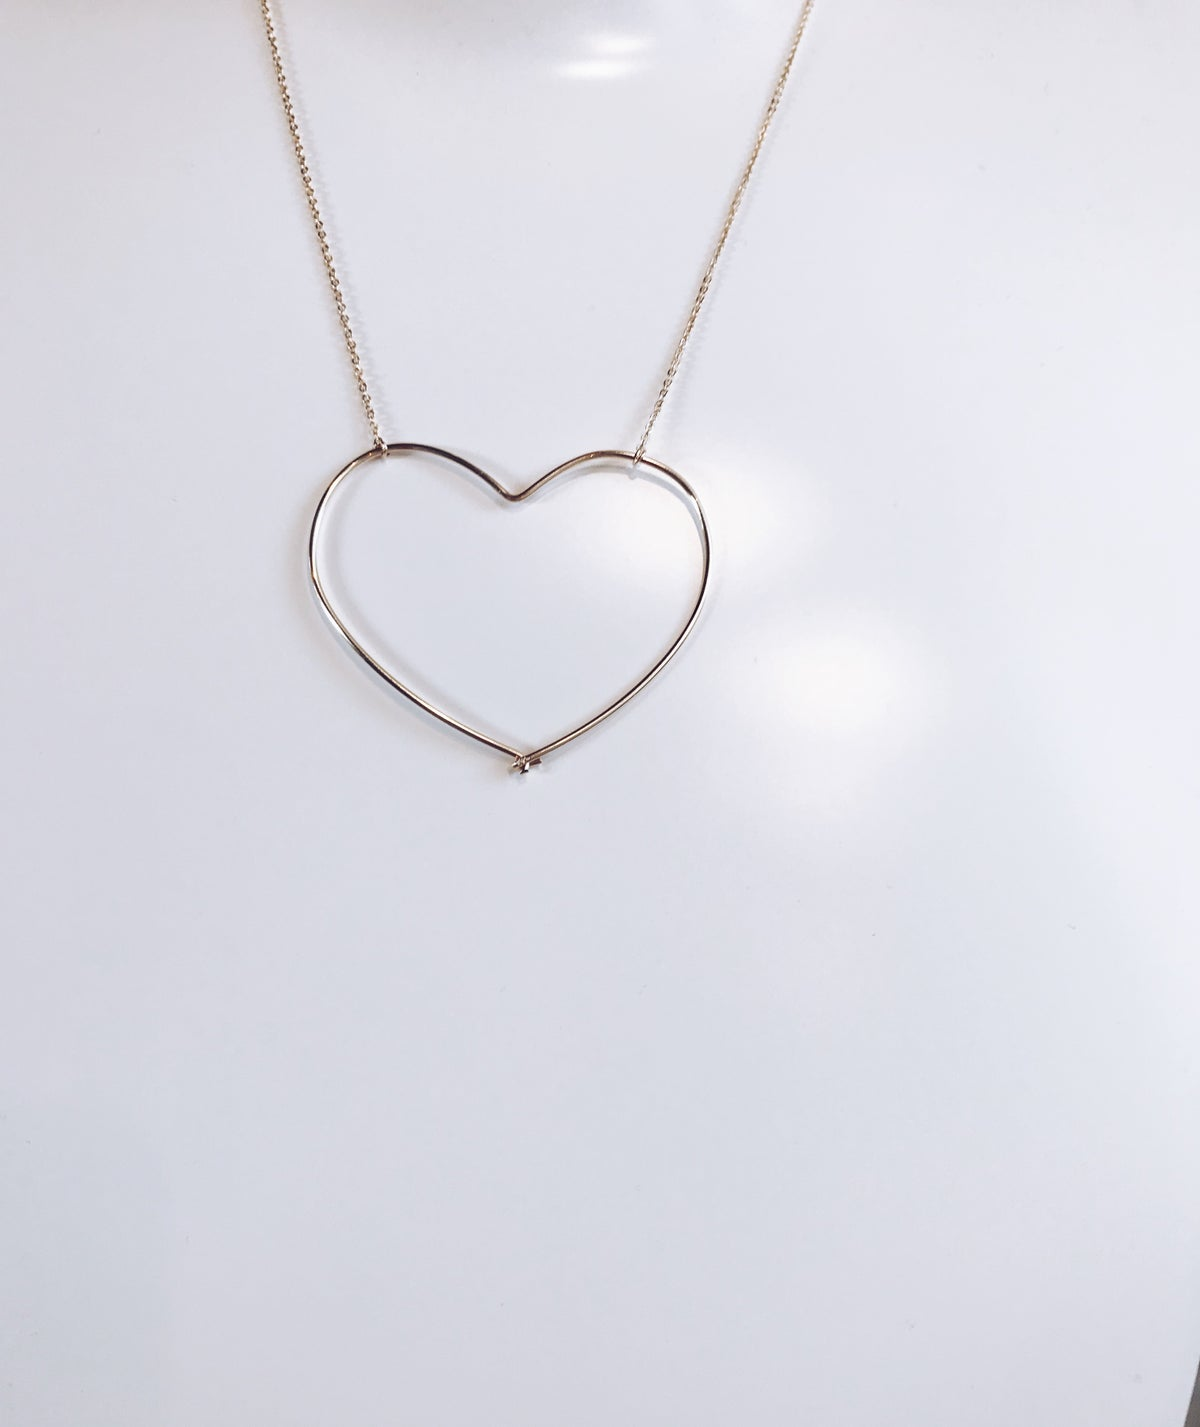 Image of Le collier big Love sur mesure